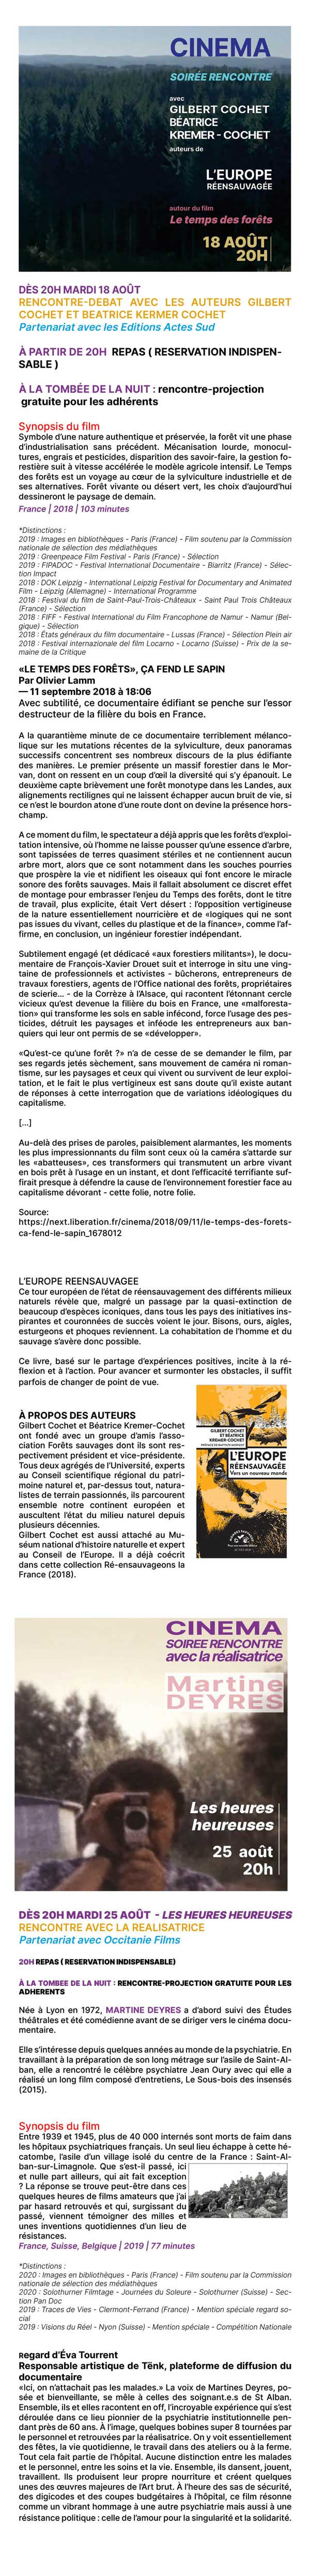 image-rencontres-aout.jpg